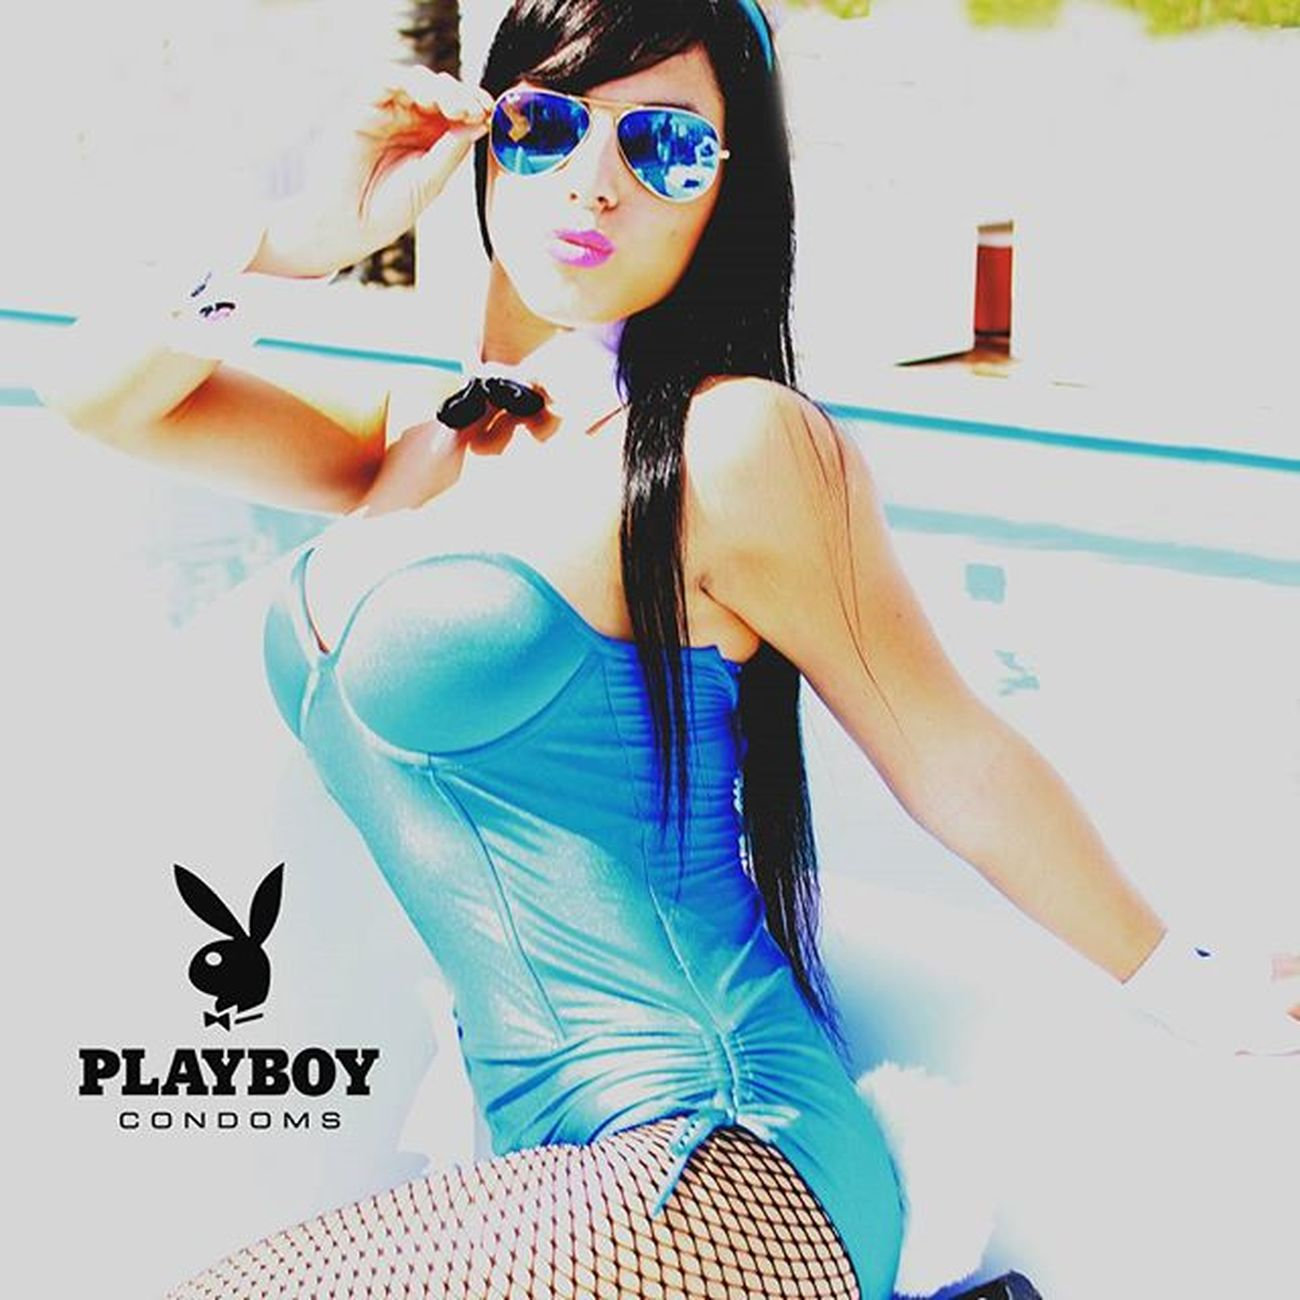 Playboytour Pinamar 2015  2016 NorDelta Glamorous  Show Bunnies Playmates @_paulacastillo Photooftheday Ph Elsanto Playboy Fashionshows Presents Unico en Sudamerica Be Playboyculture Fantasy Night by Playboycondoms Playboyintimates Playboyfragrances